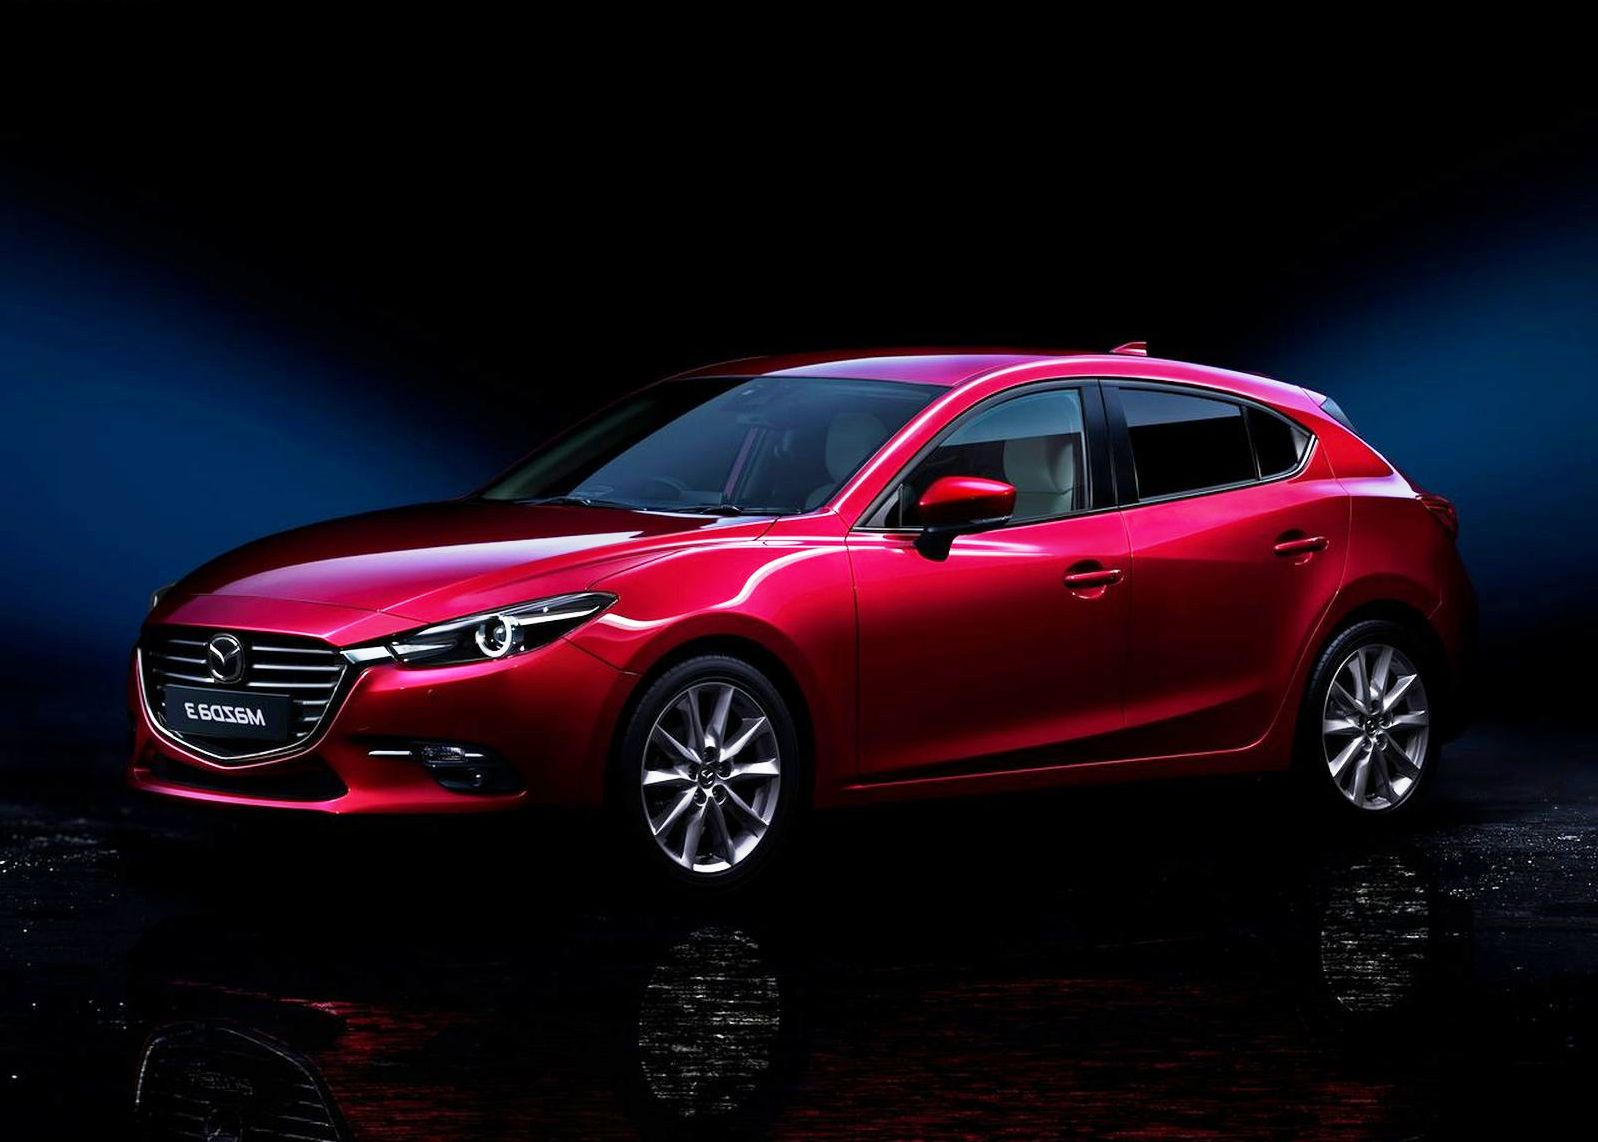 2018 Mazda 3 turbo review